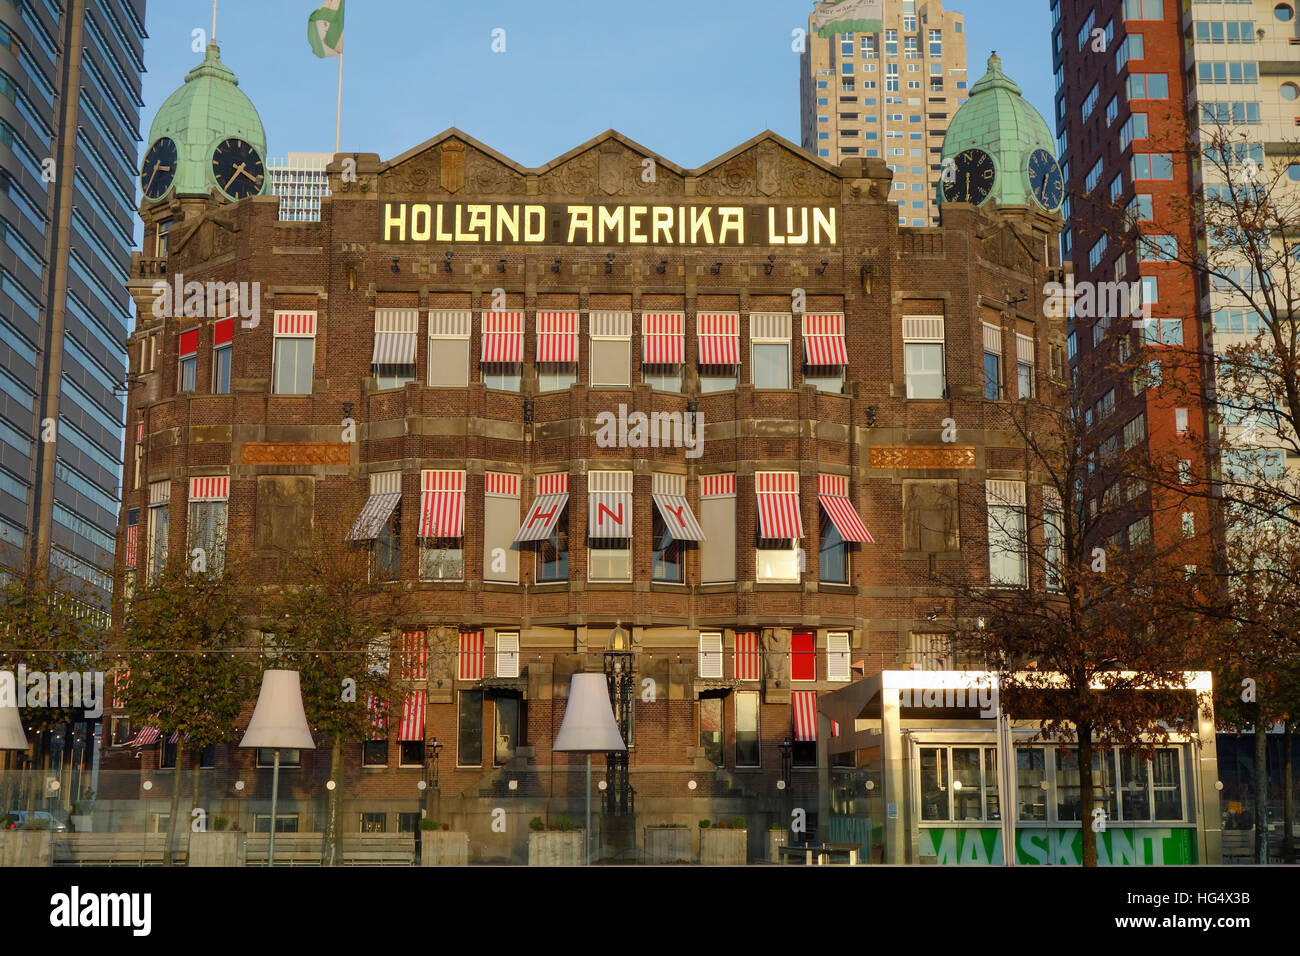 Hotel New York, Holland Amerika Line, Rotterdam, Netherlands - Stock Image